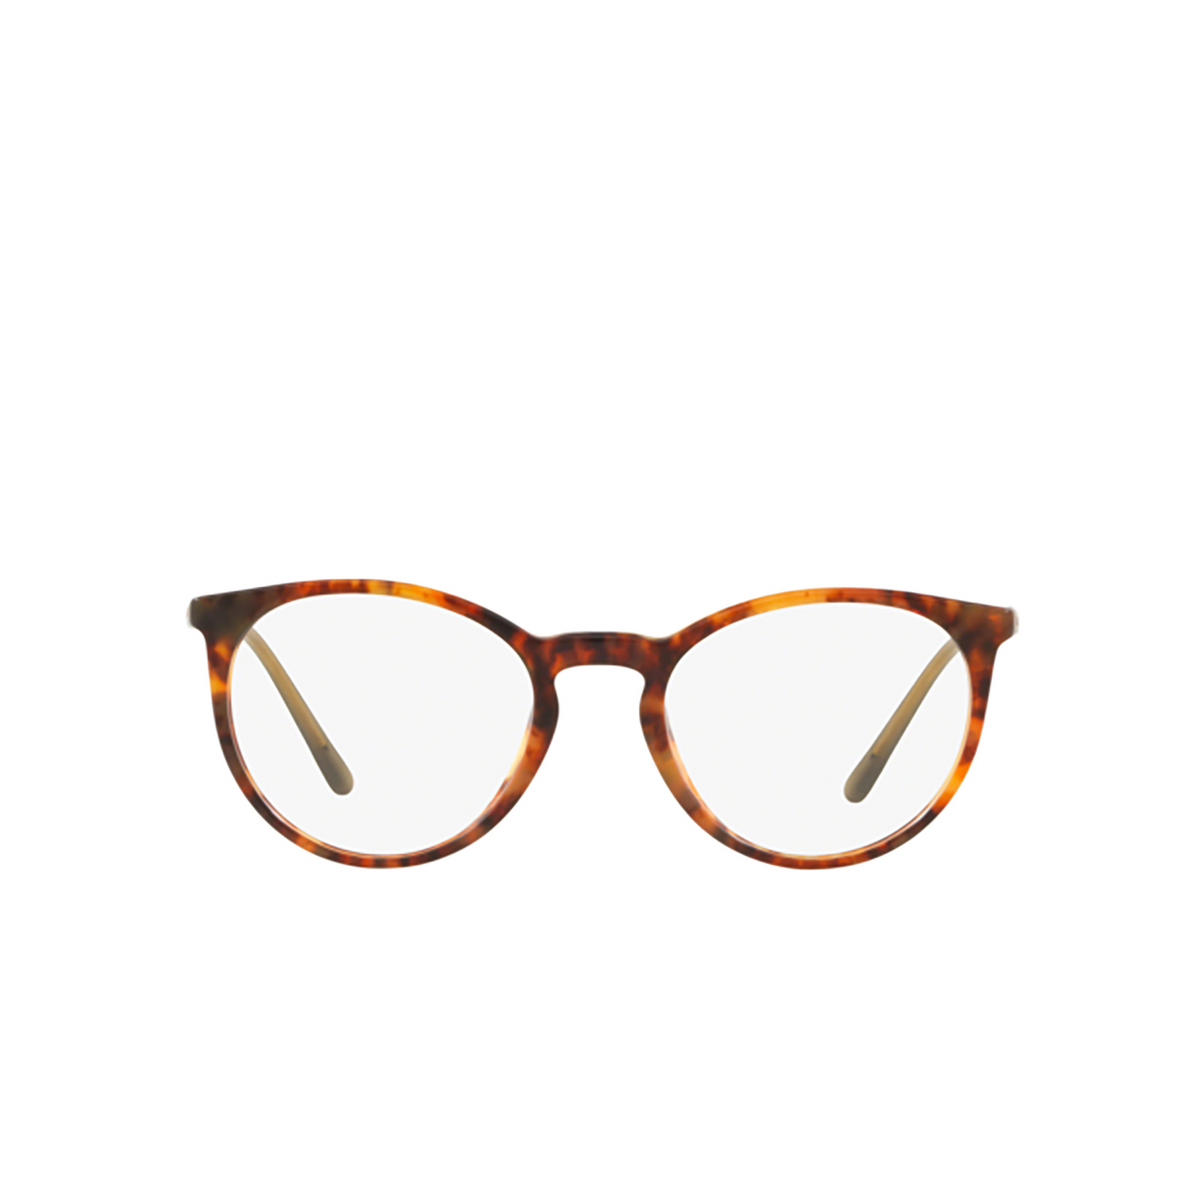 Polo Ralph Lauren® Round Eyeglasses: PH2193 color 5017 - front view.